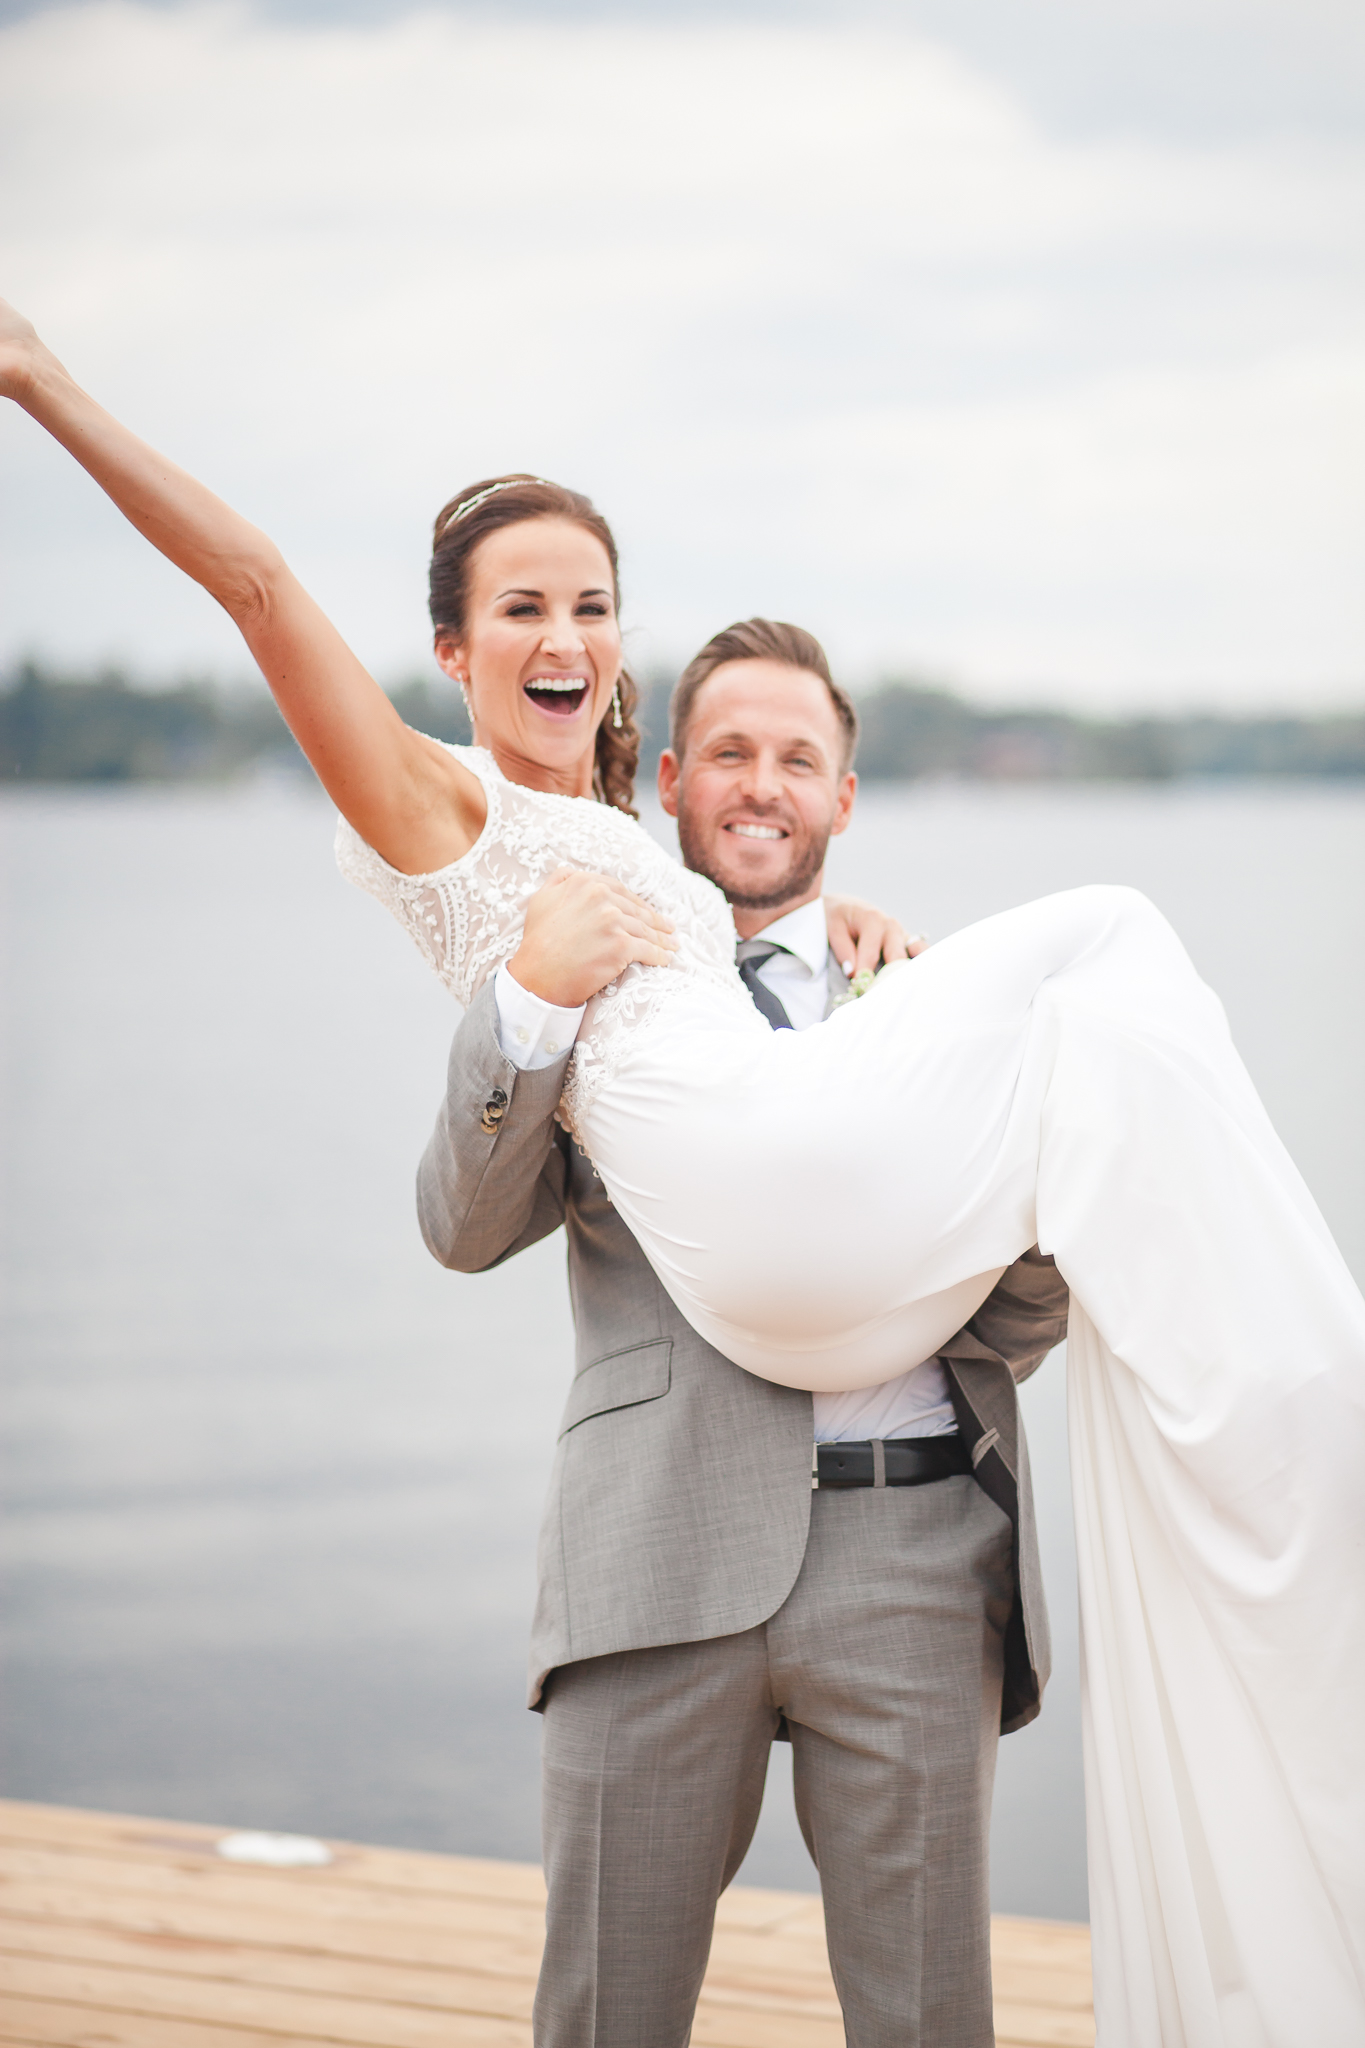 Amy D Photography- Barrie wedding photography- Wedding Photographer- Best Wedding Photographer- Muskoka Wedding- Muskoka Wedding Photographer- Bride and groom poses- Bride Pose- groom pose- Wedding Pose (54 of 99).jpg